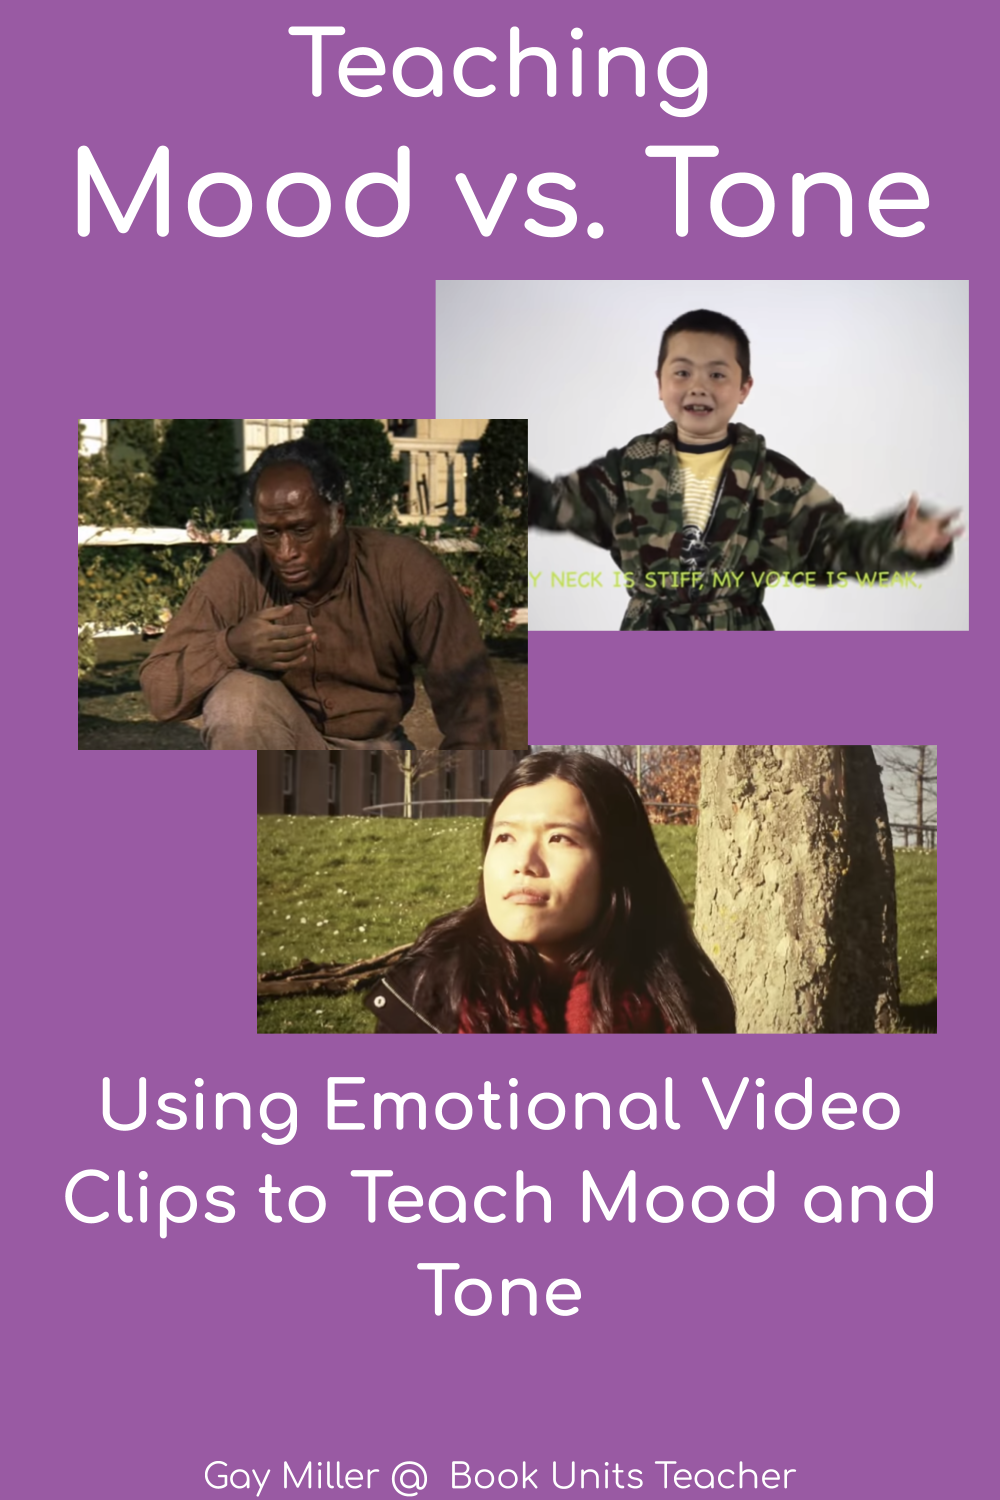 In this mini lesson, students learn the differences between mood and tone with emotional video clips and other activities.